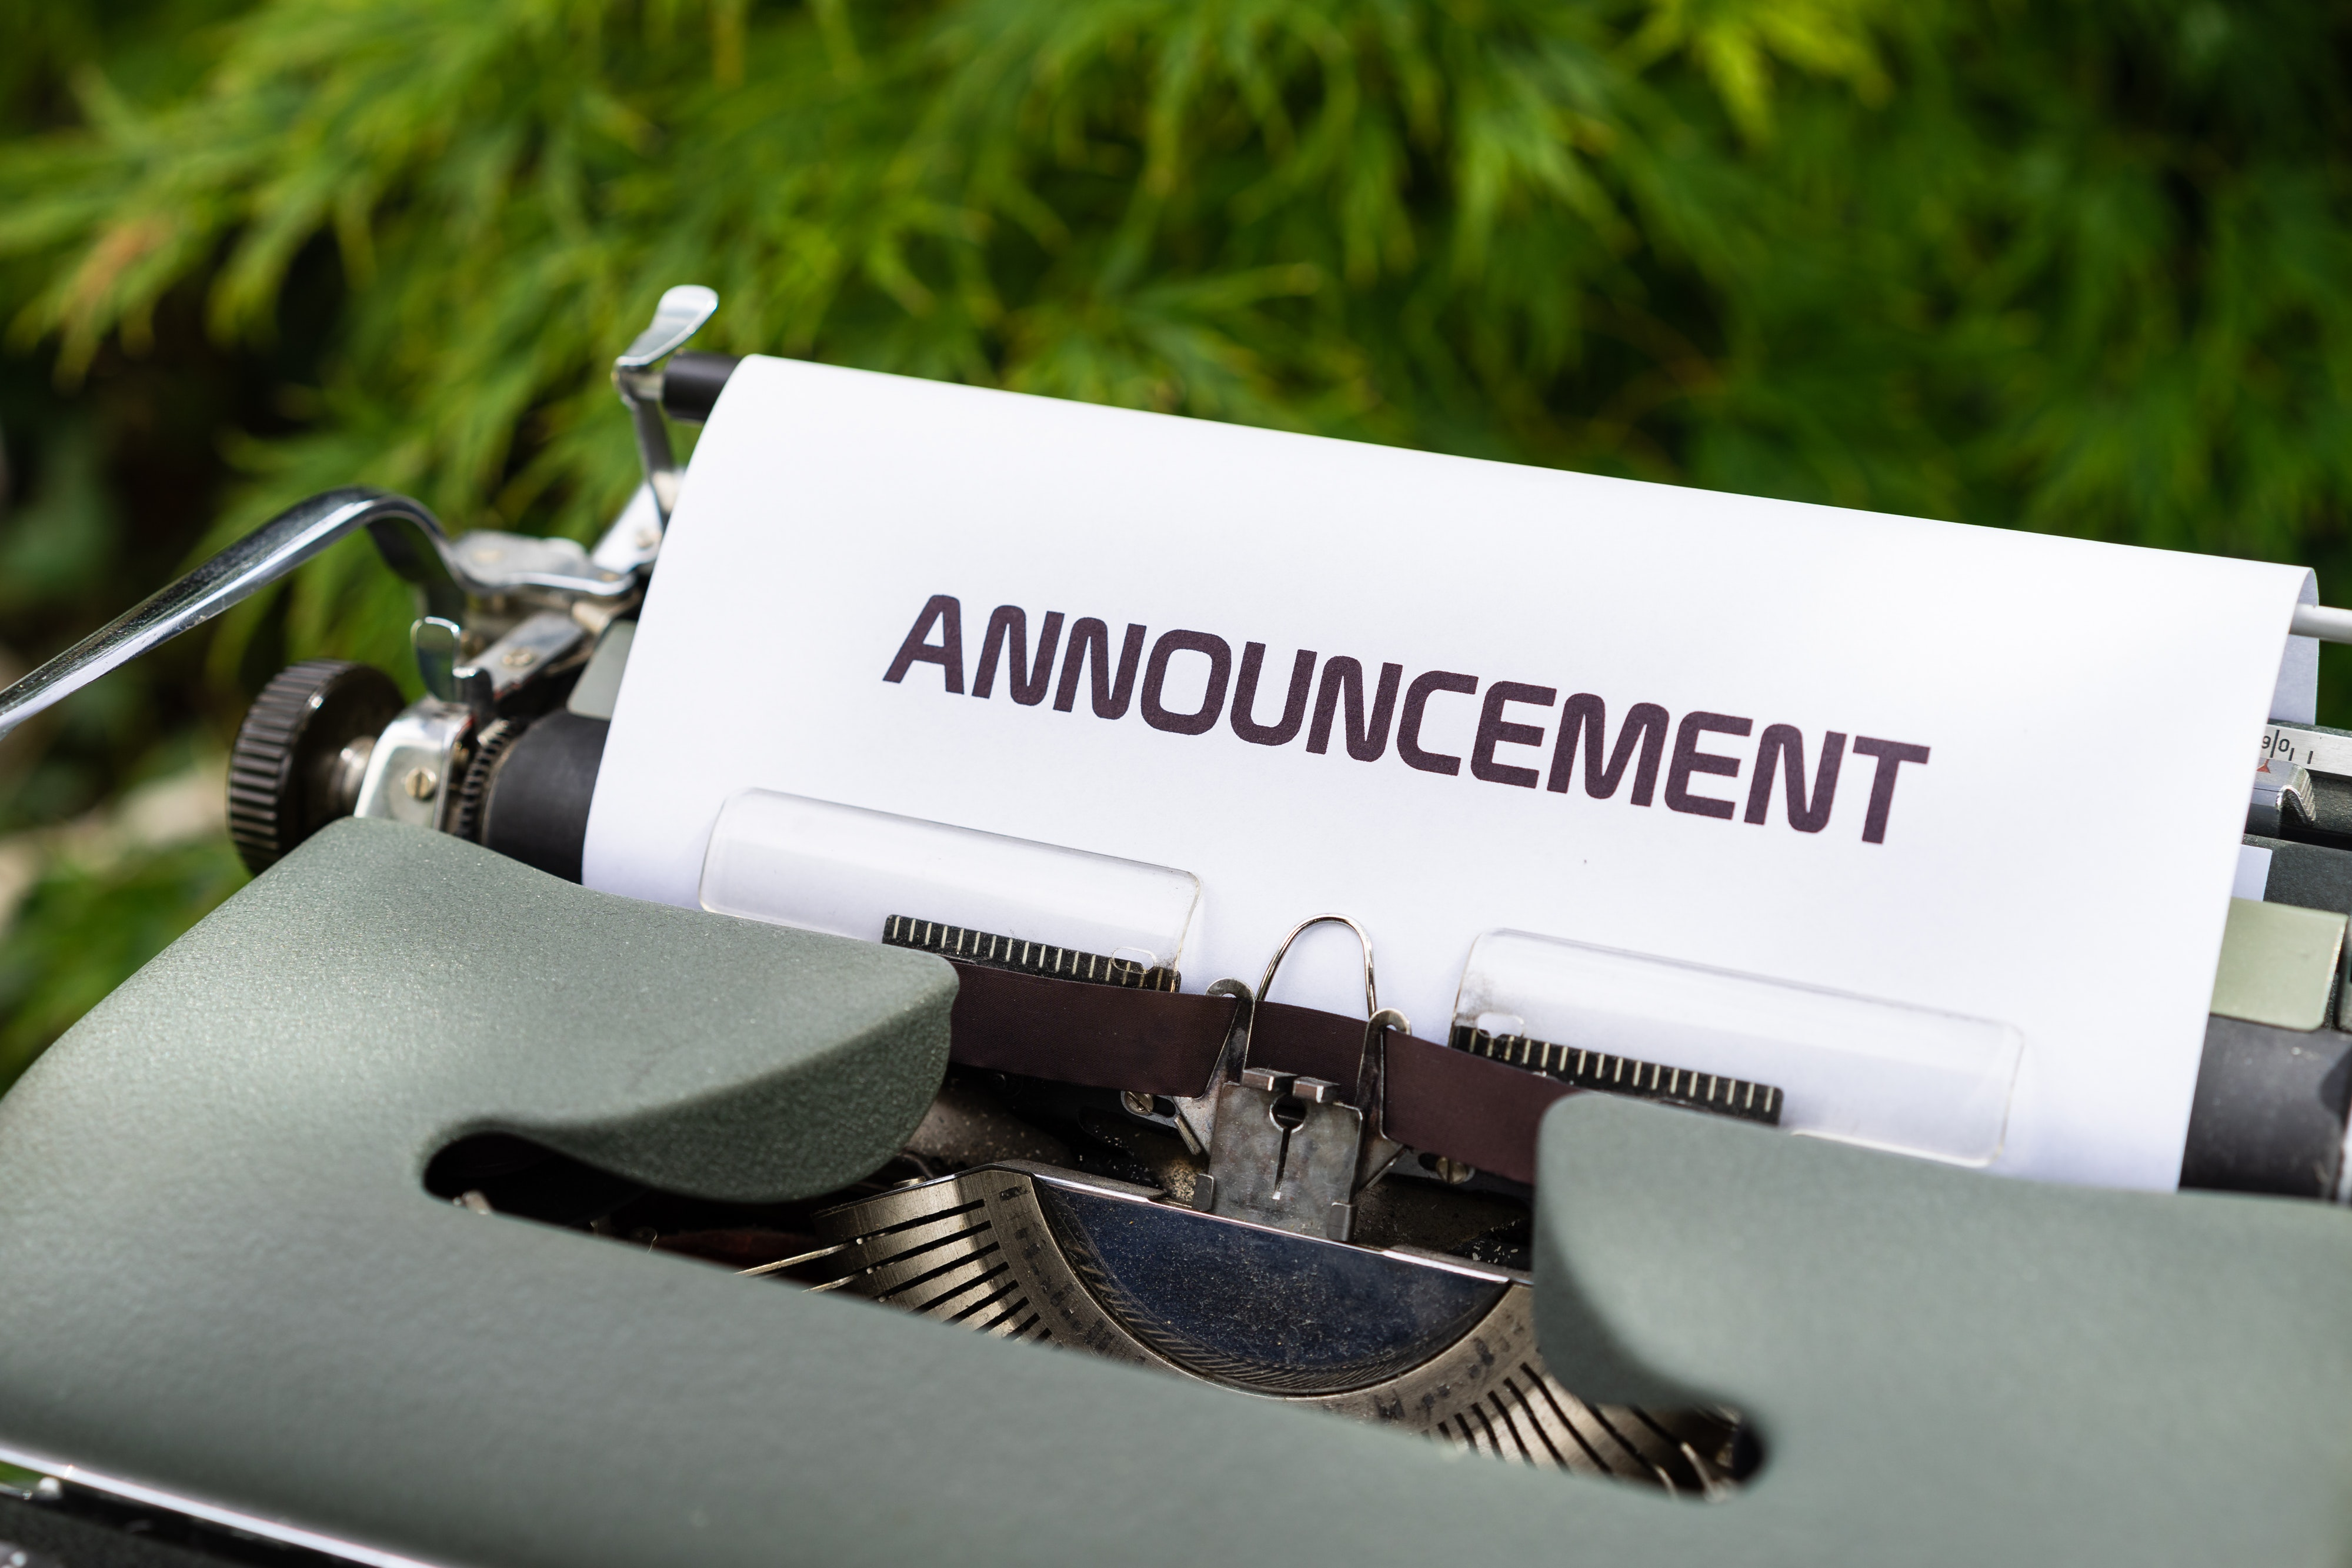 typewriter-with-paper-that-says-announcement